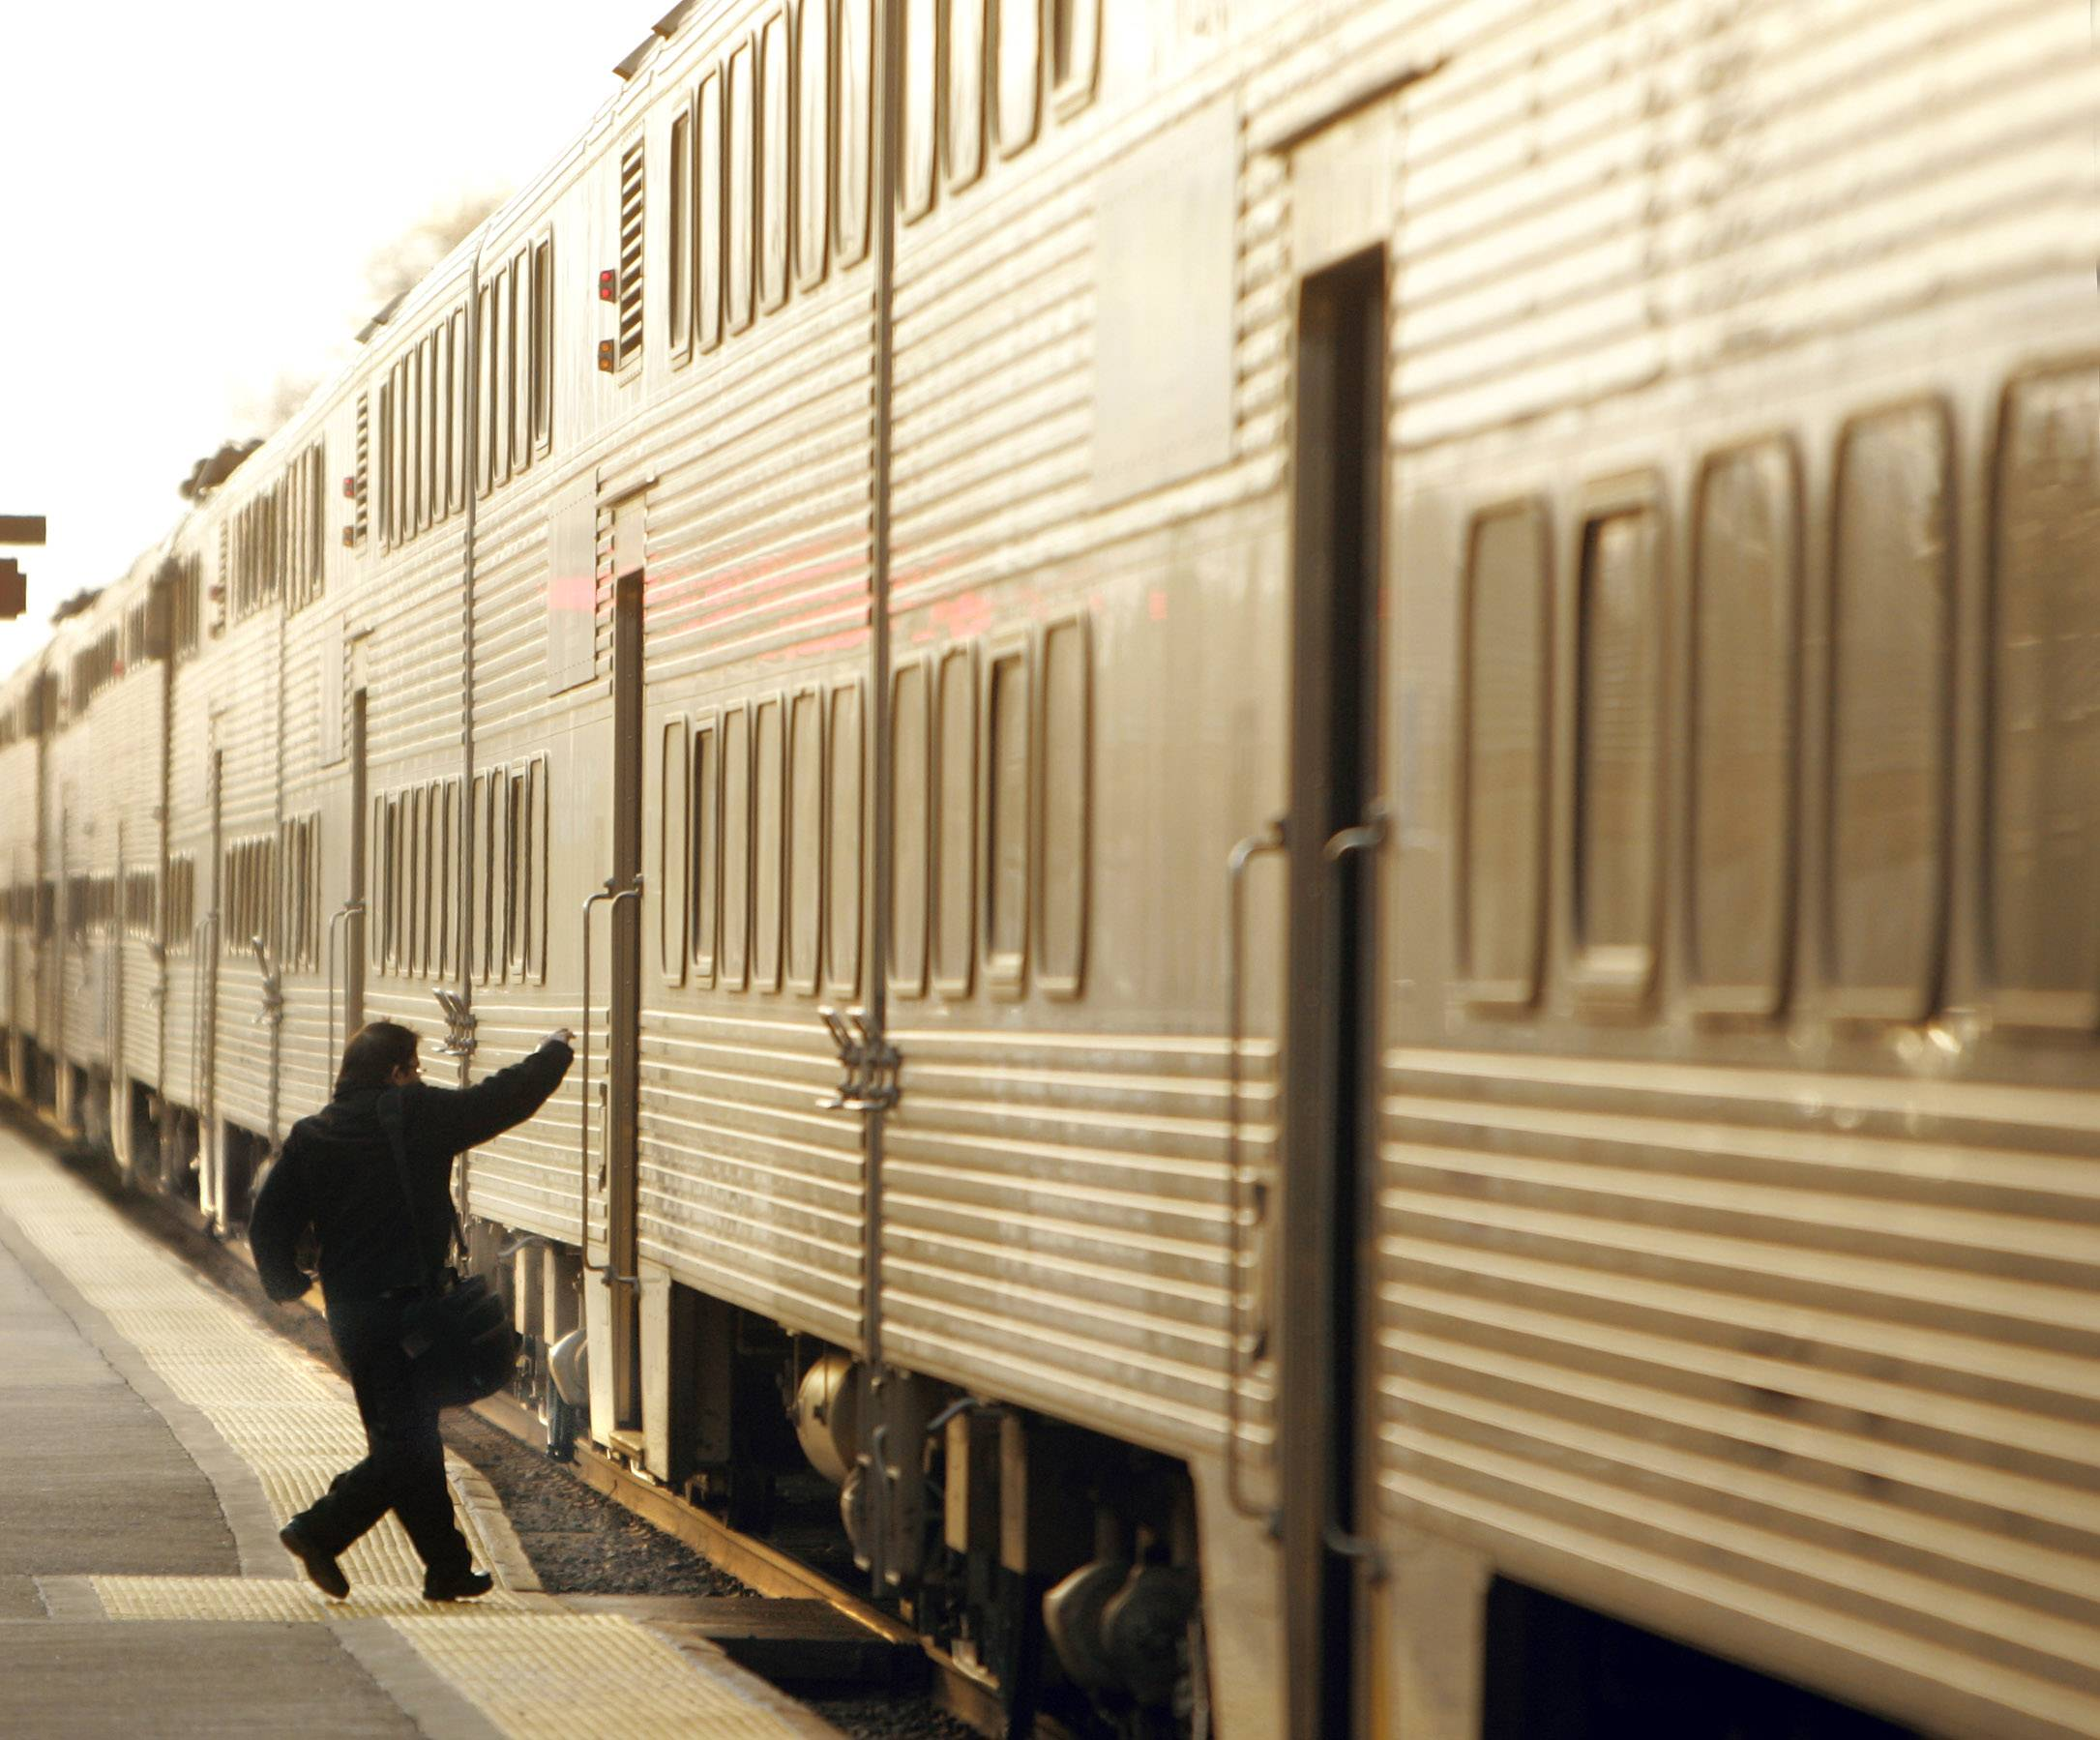 Metra leaders want commuters to take a leap of faith when it comes to fare increases.